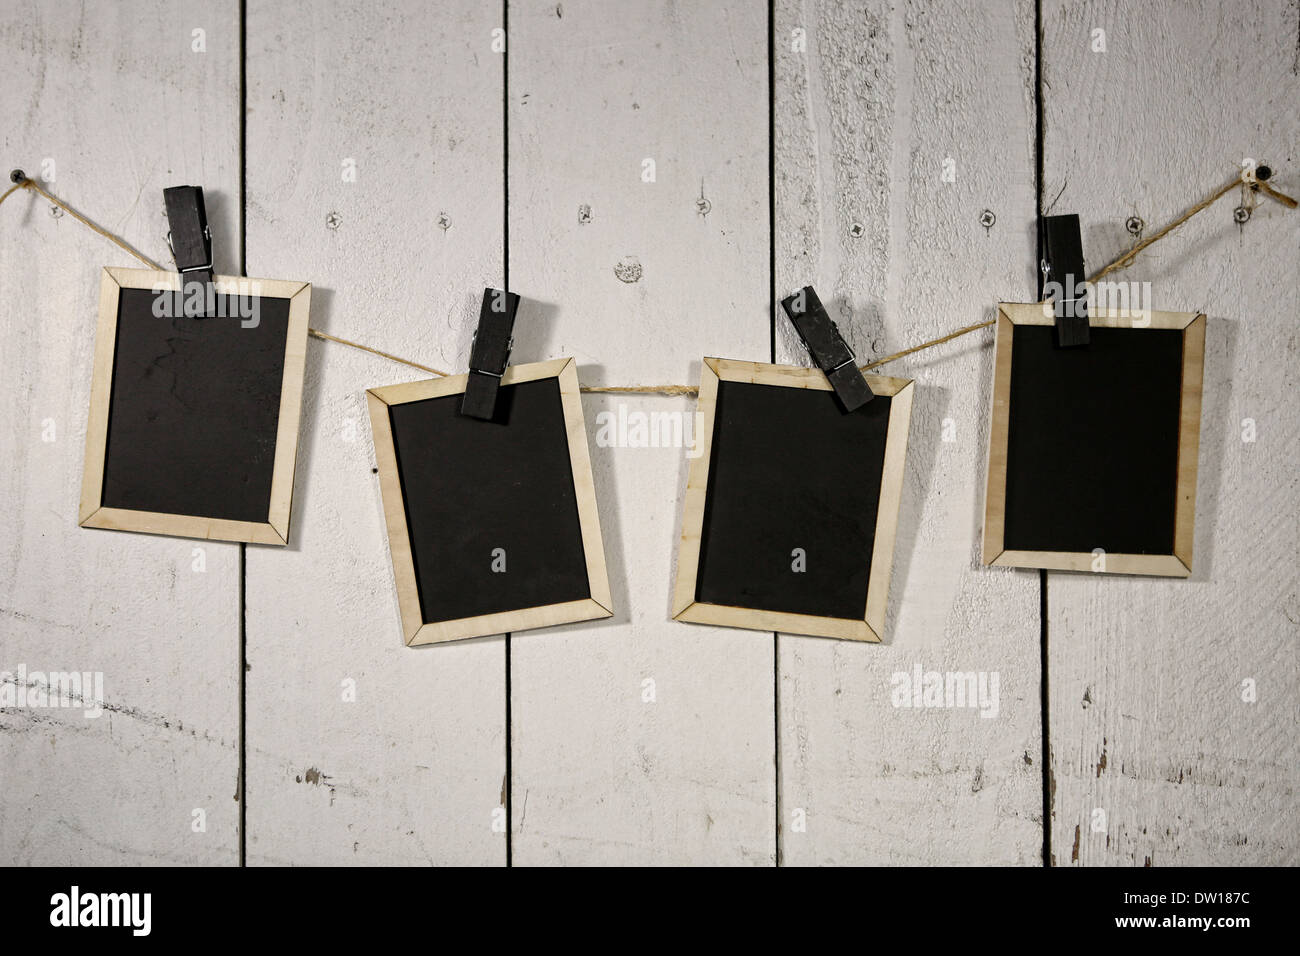 Old Film Looking Chalkboards Hanging on a Rope Held By Clothespins - Stock Image